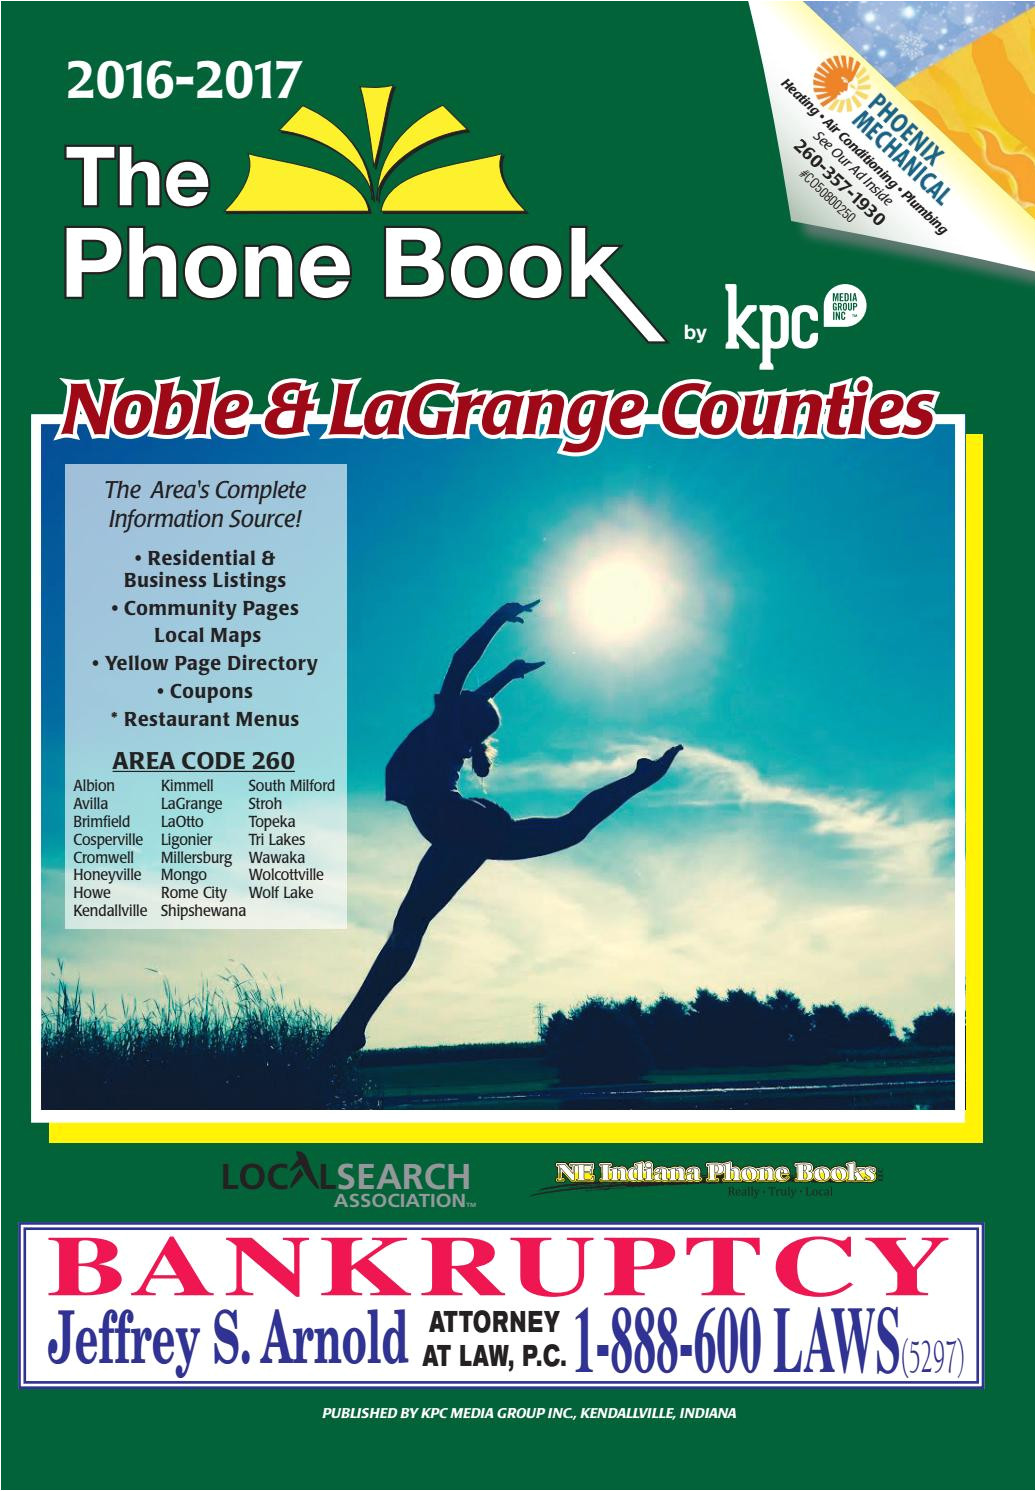 2016 2017 phone book noble and lagrange counties by kpc media group issuu